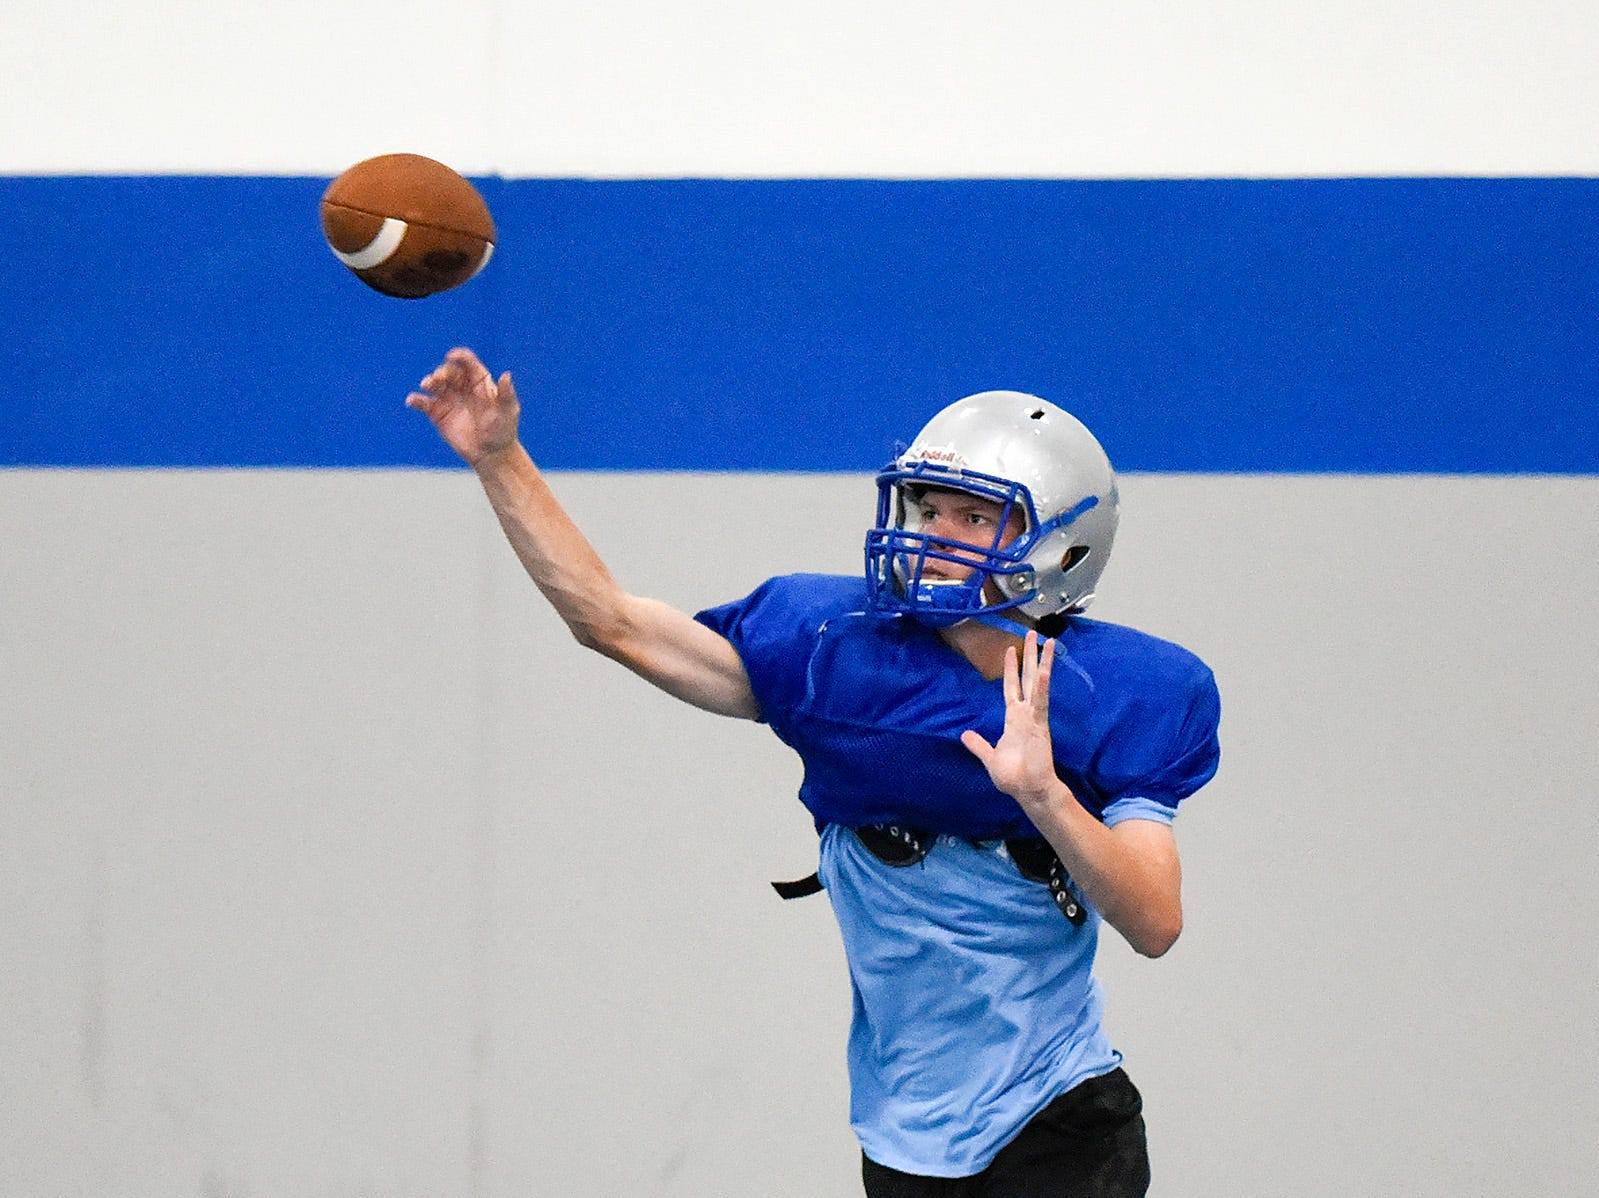 Foley quarterback Alex Foss makes a pass during practice Monday, Aug. 20, at the Foley High School.